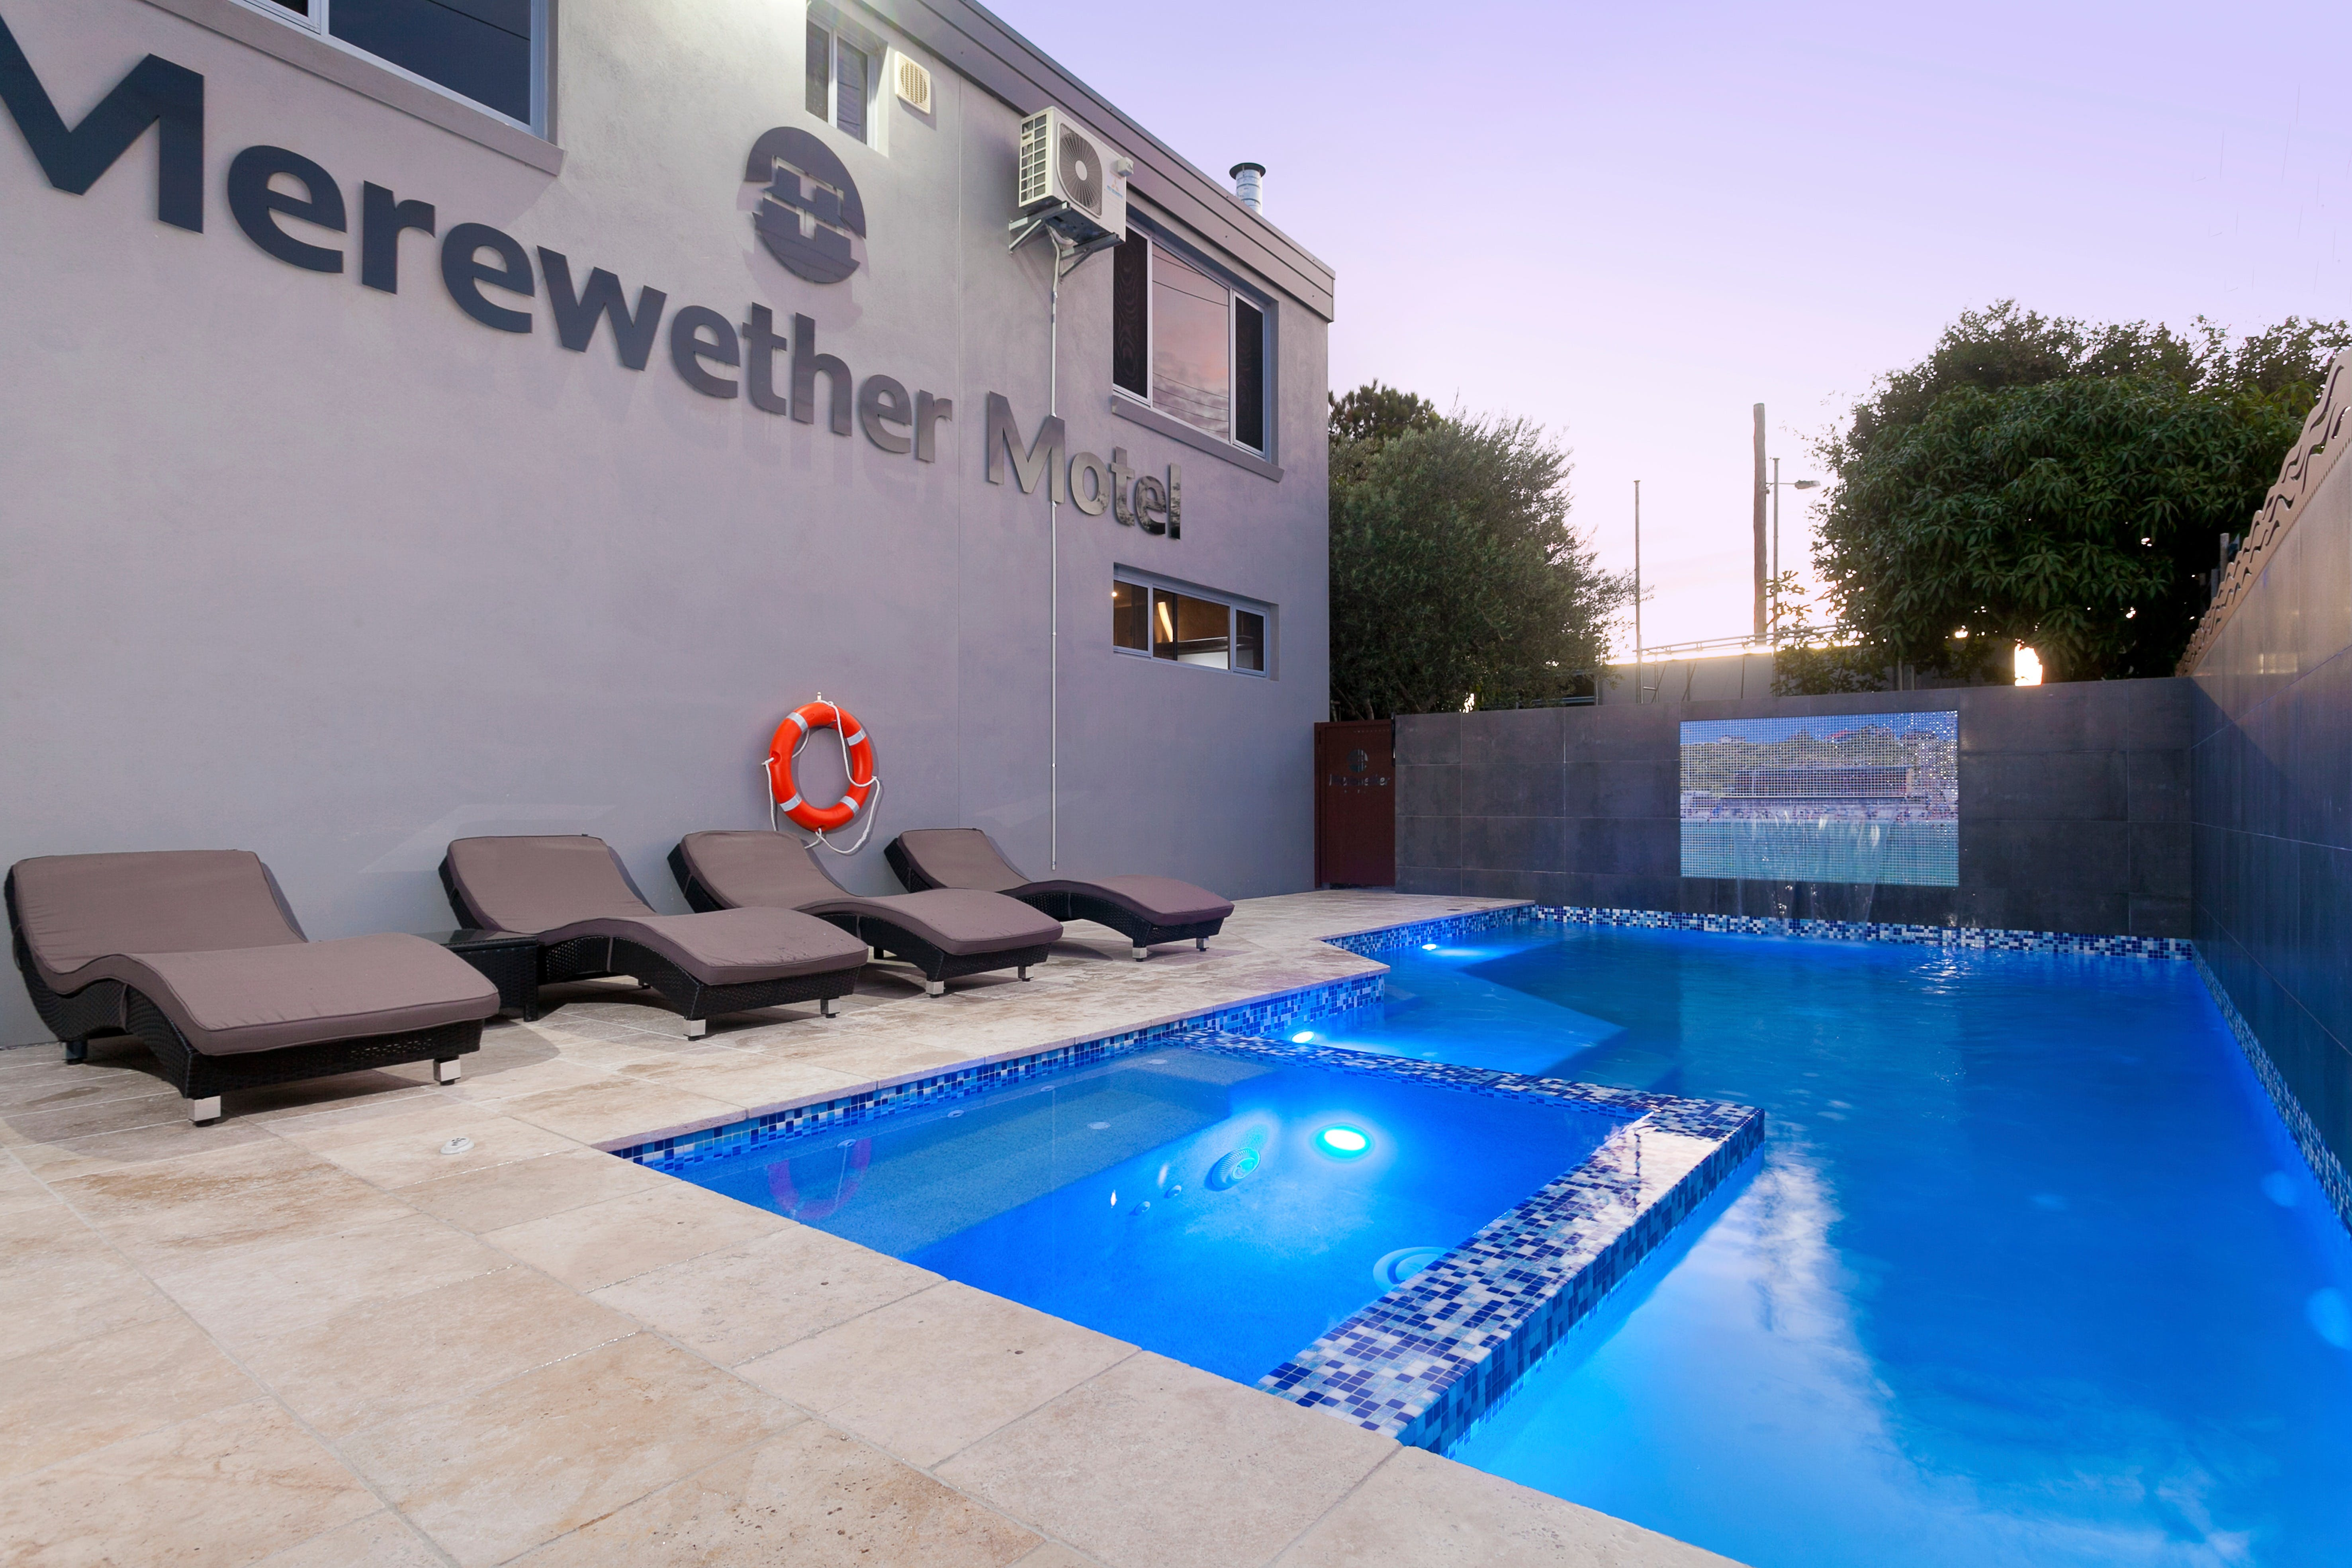 Merewether Motel - C Tourism